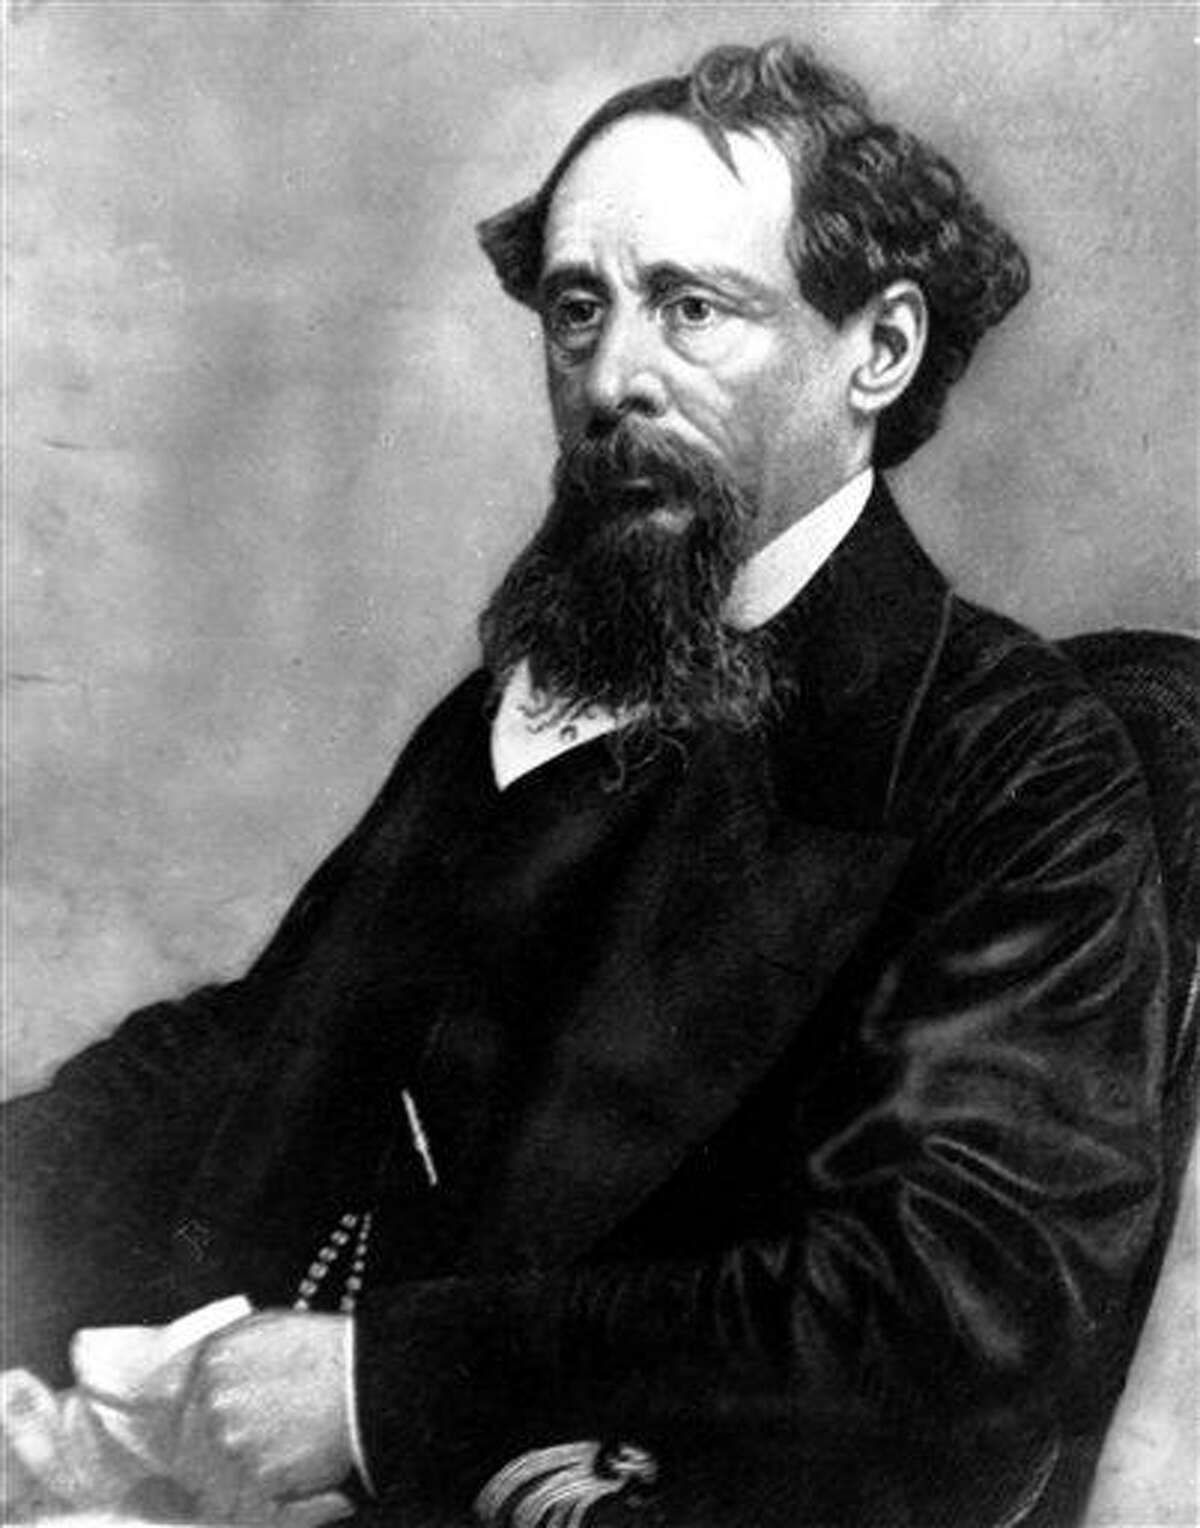 In this undated file photo, novelist Charles Dickens poses for a photograph. Britain's Prince Charles will lay a wreath Tuesday on the writer's grave in Westminster Abbey's Poet's Corner to mark his 200th of birthday. Associated Press